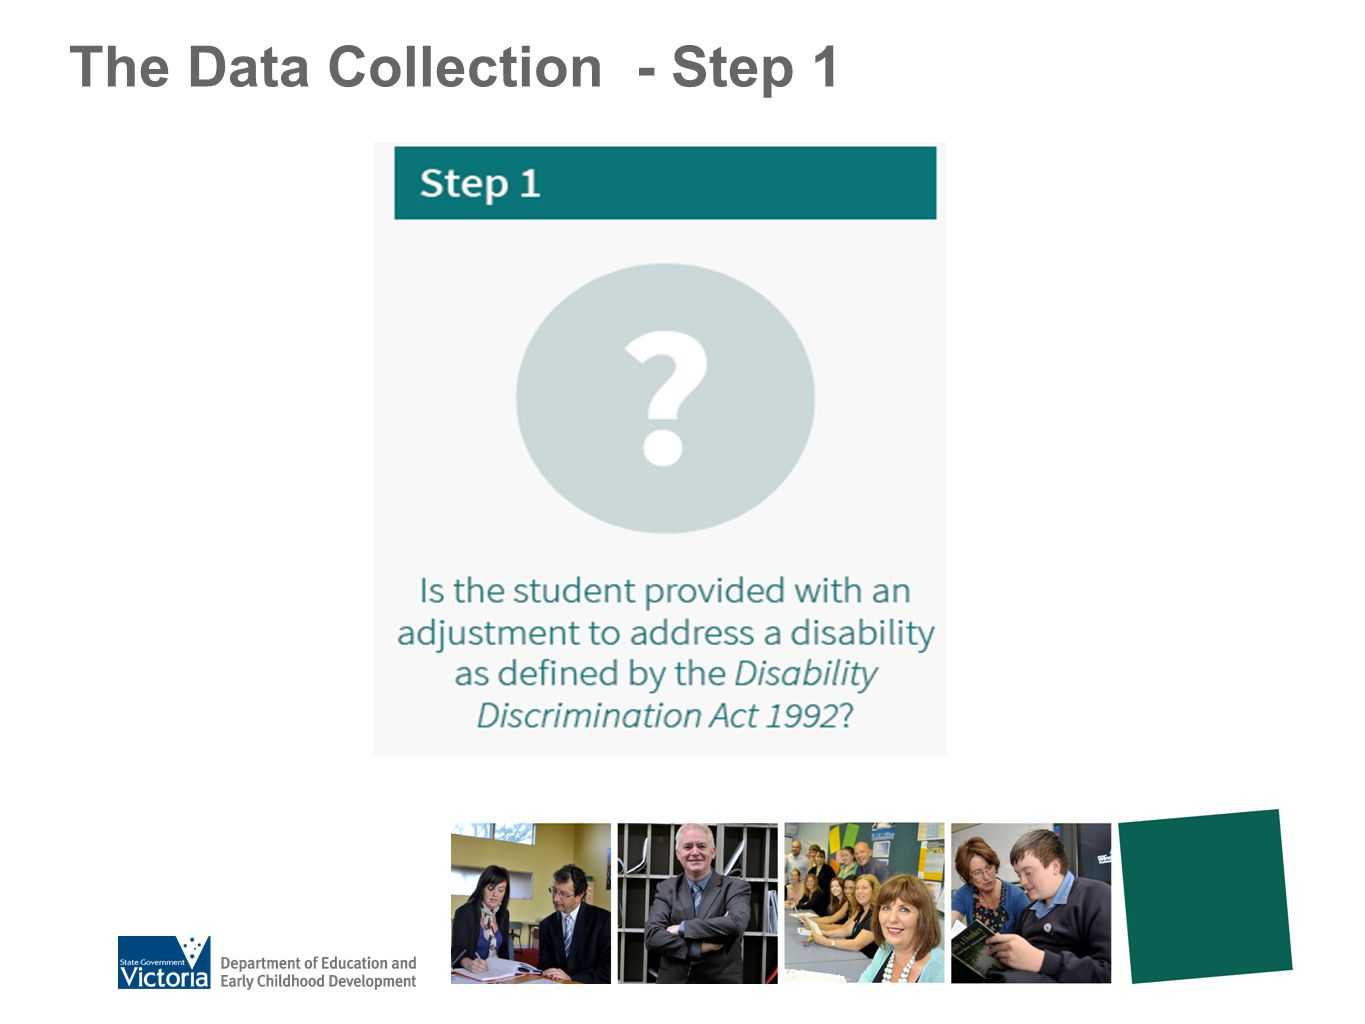 The Data Collection - Step 1